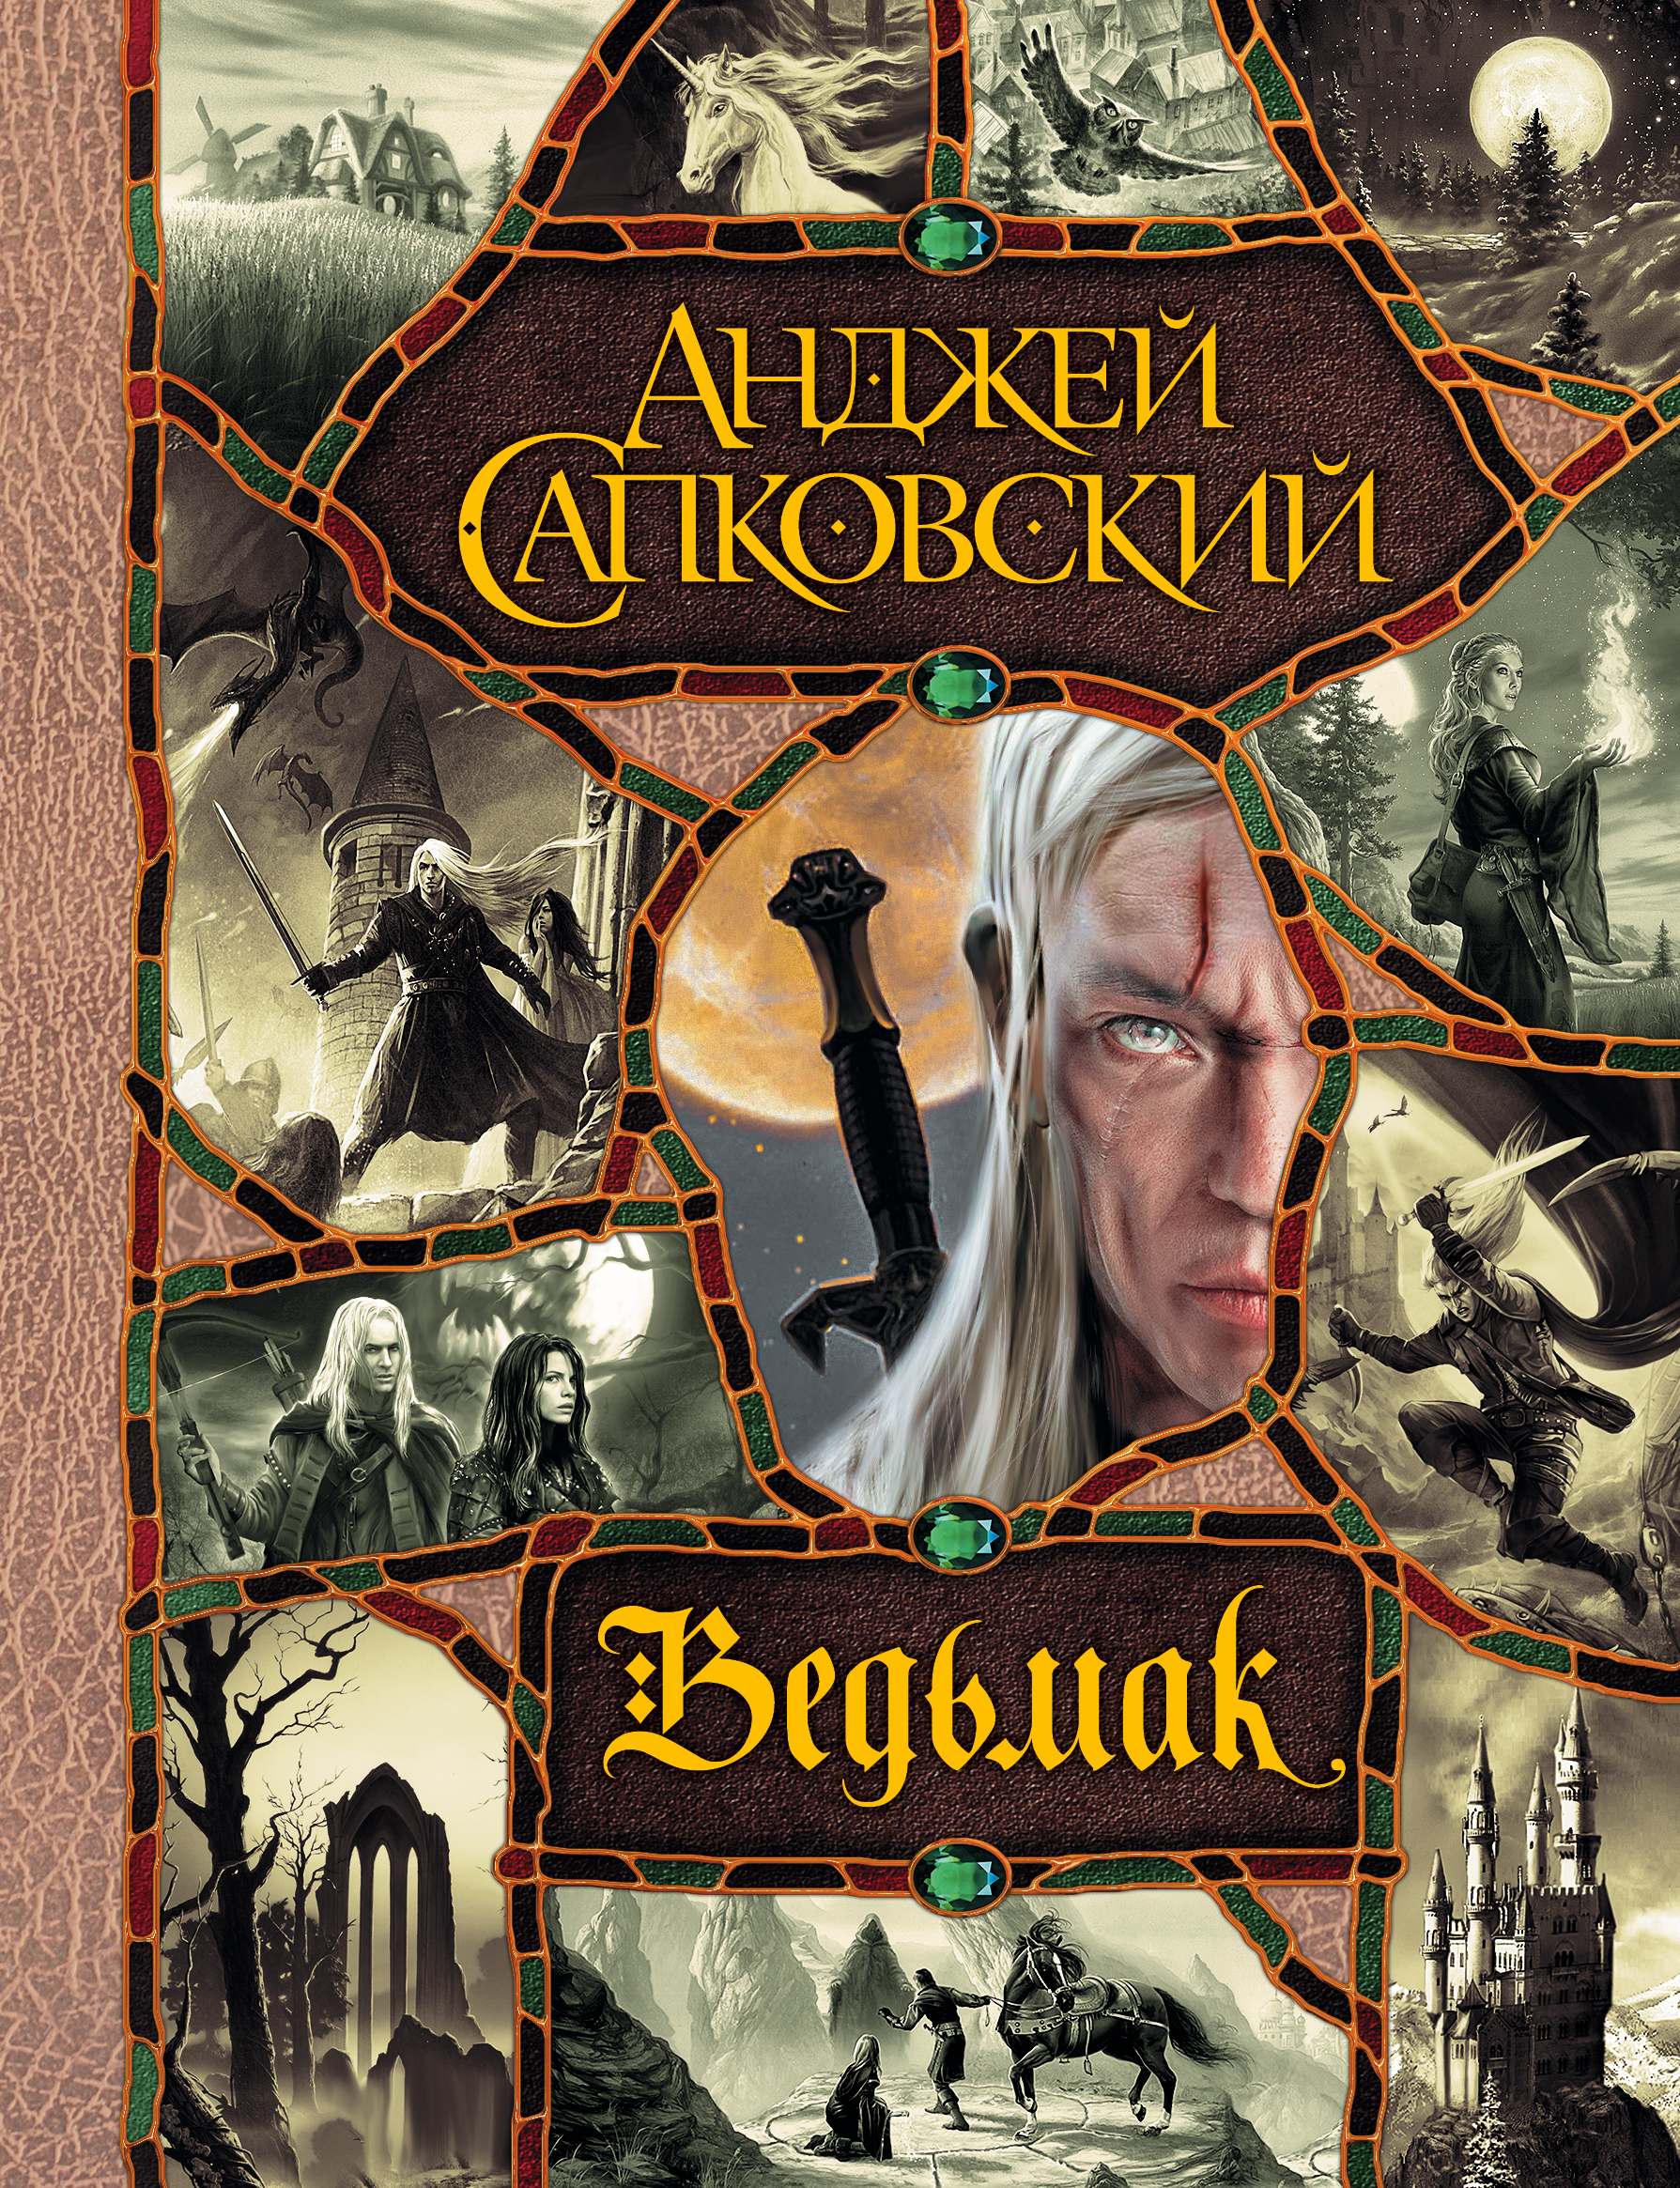 Blood of the elves ebook torrent sex picture